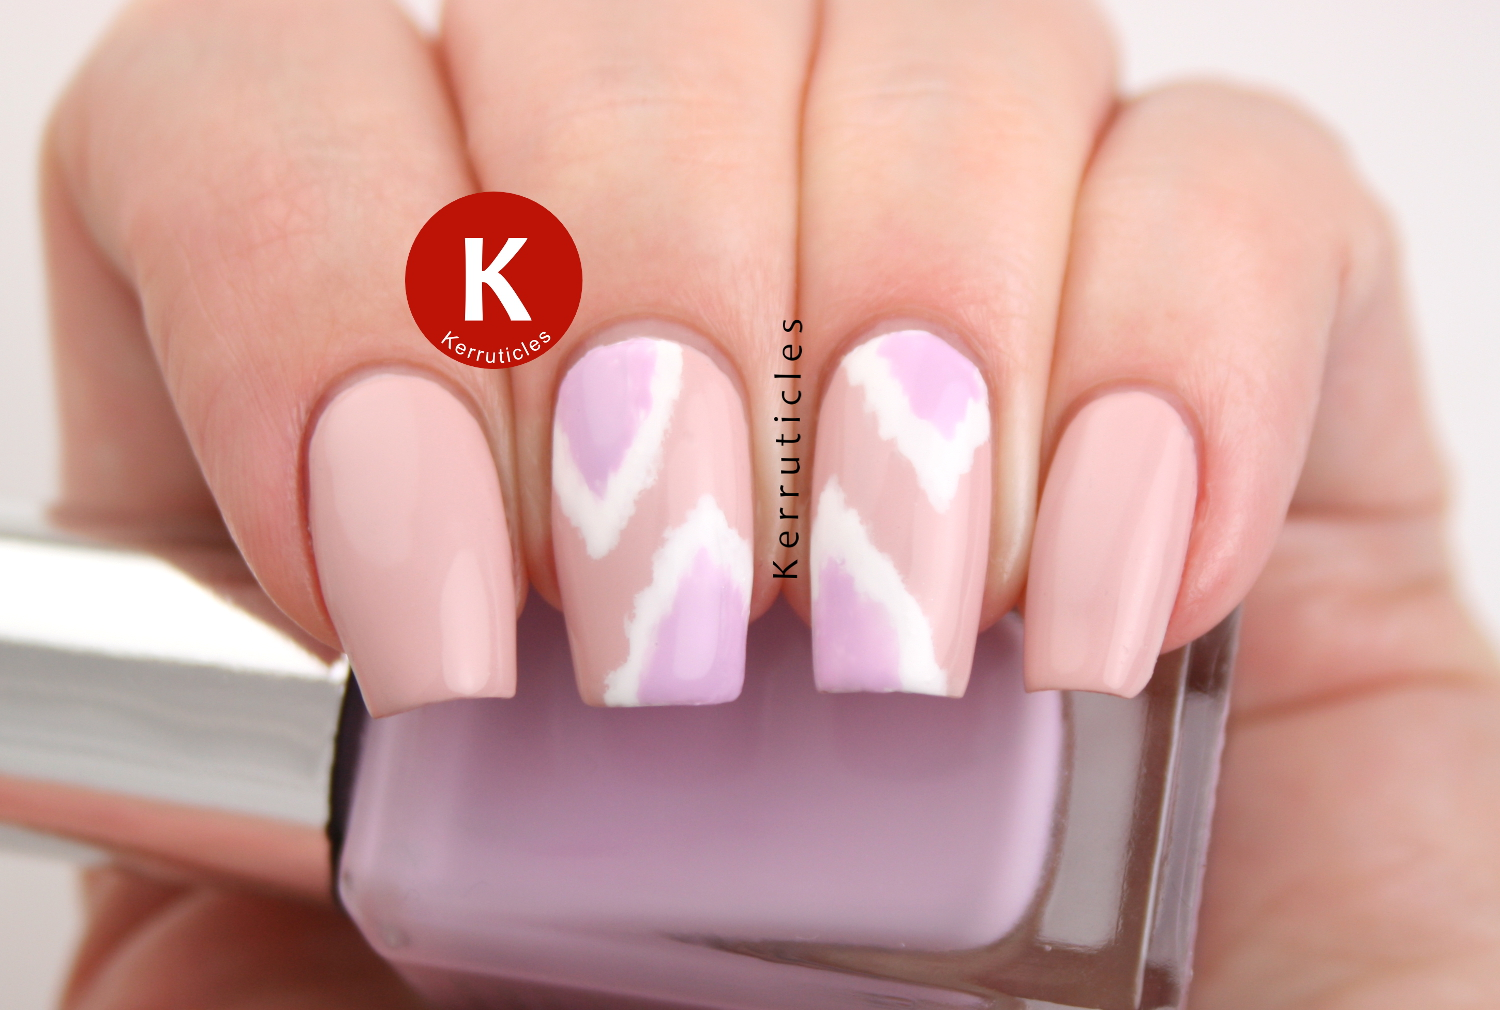 Pink and lilac Ikat nails using Barry M polishes